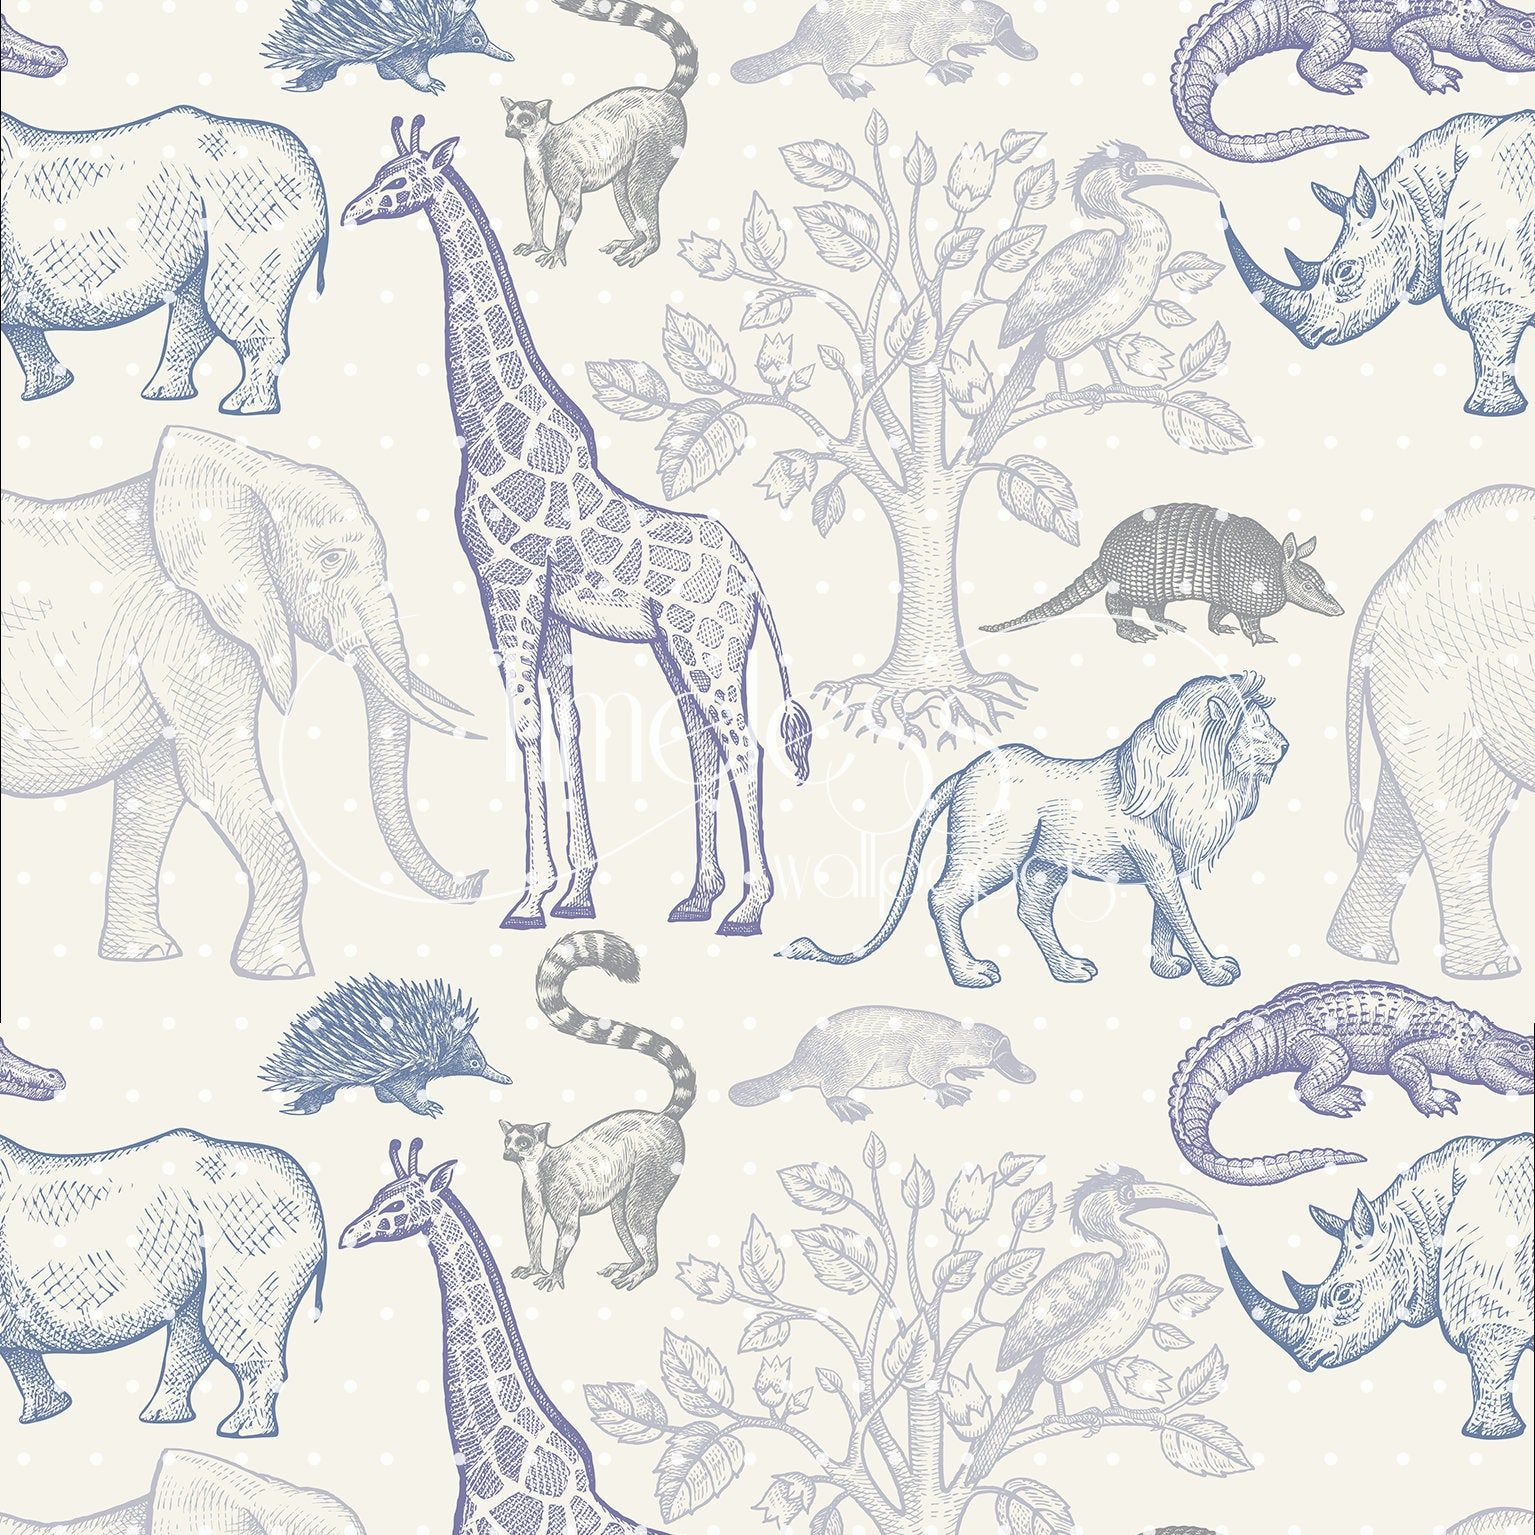 Jungle Animals Removable Wallpaper Sketched Colorful 48 Etsy Removable Wallpaper Wallpaper Jungle Animals